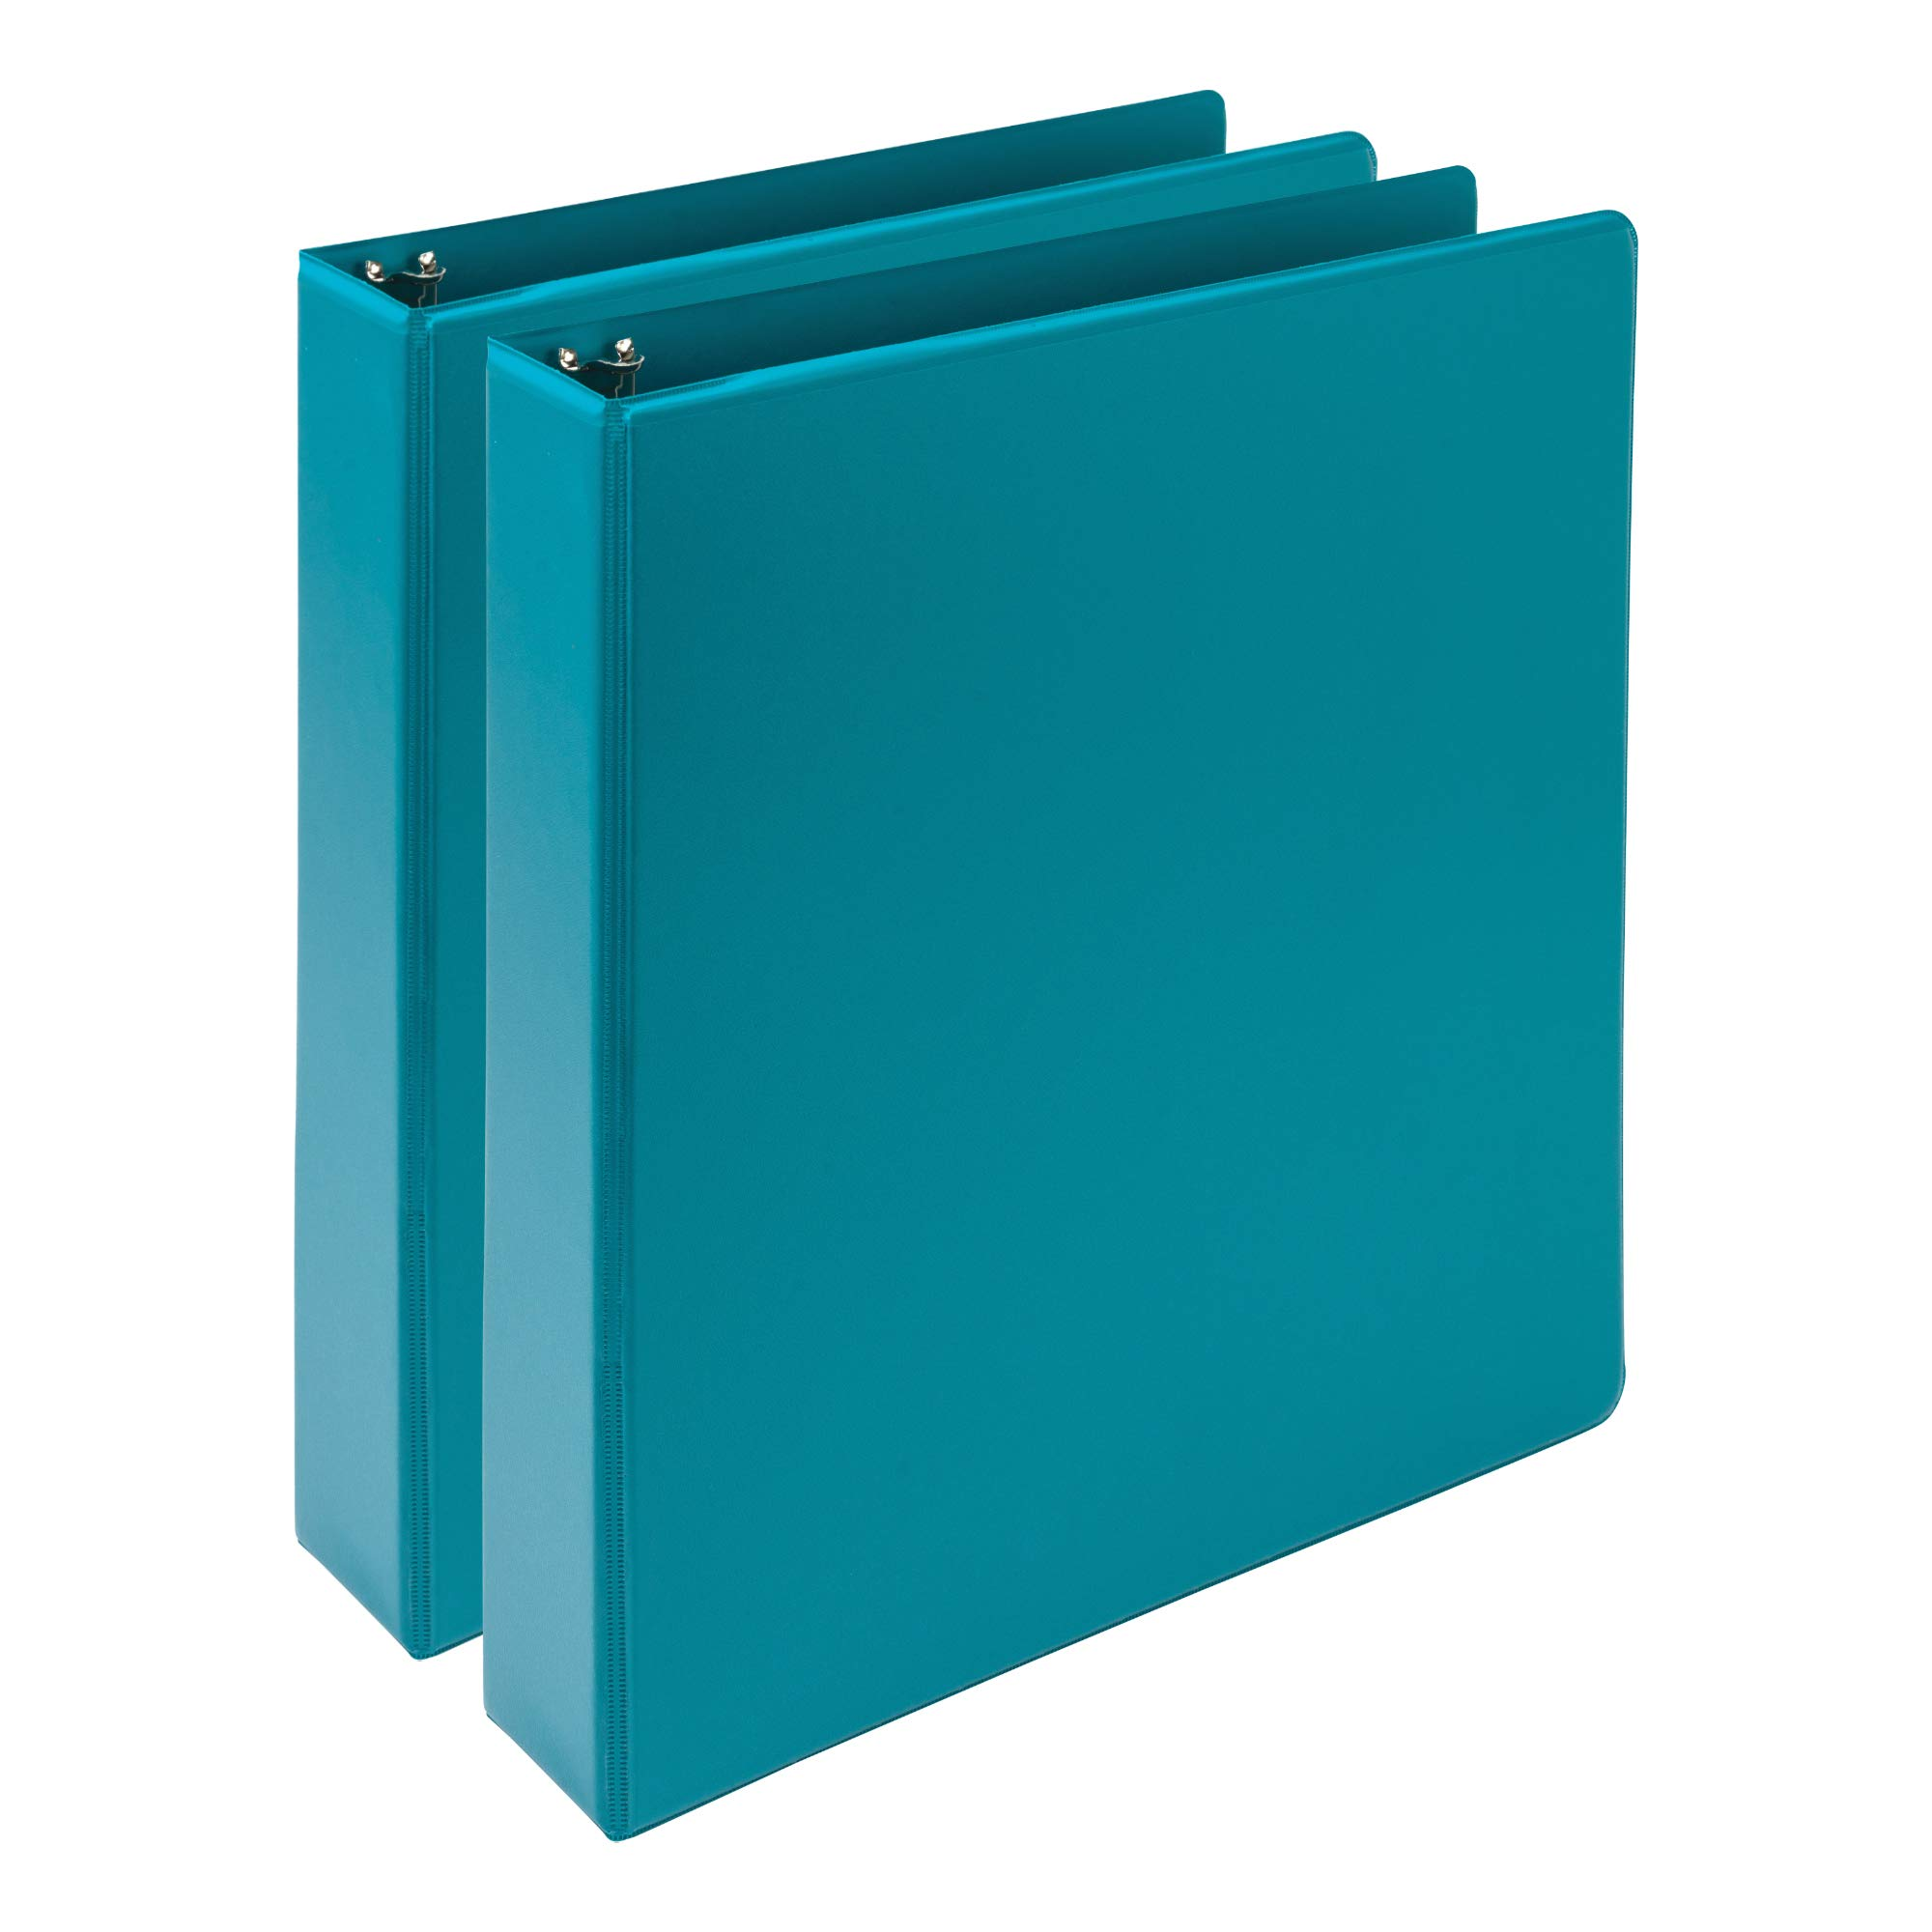 Samsill Earth's Choice, Durable Fashion Color 3 Ring View Binder, 1.5 Inch Round Ring, Up to 25% Plant Based Plastic, Eco-Friendly, USDA Certified Biobased, Turquoise, Value 2 Pack  (MP286577)